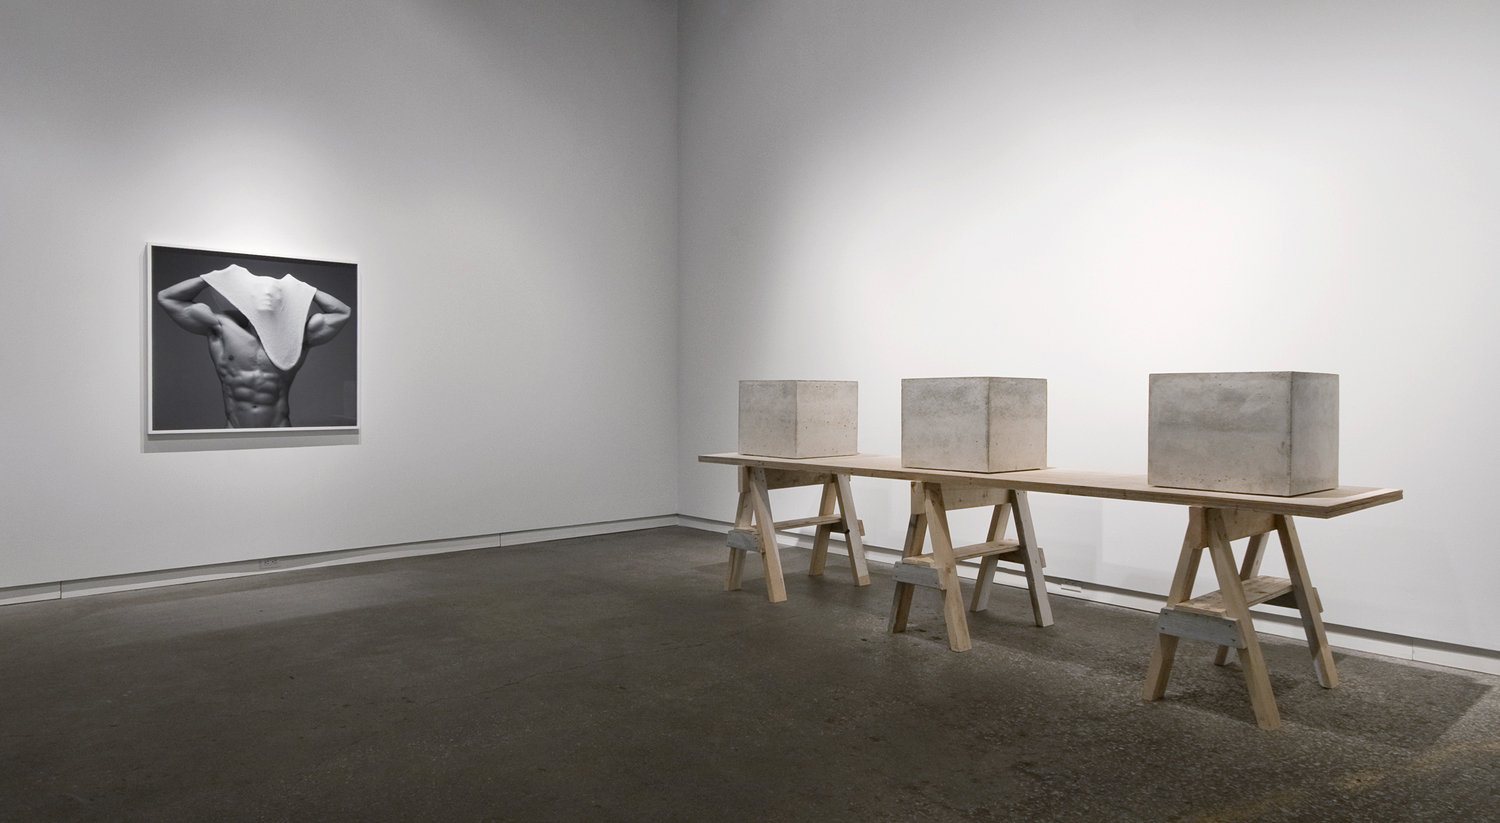 """Proud Flesh (2011), cast concrete and glass, three objects; 18"""" x 18"""" x 18""""   Beside Myself  (2011), chromogenic print; all prints are 40"""" in height  Installation view of  Beside Myself  at Daniel Faria Gallery, Toronto, Canada"""